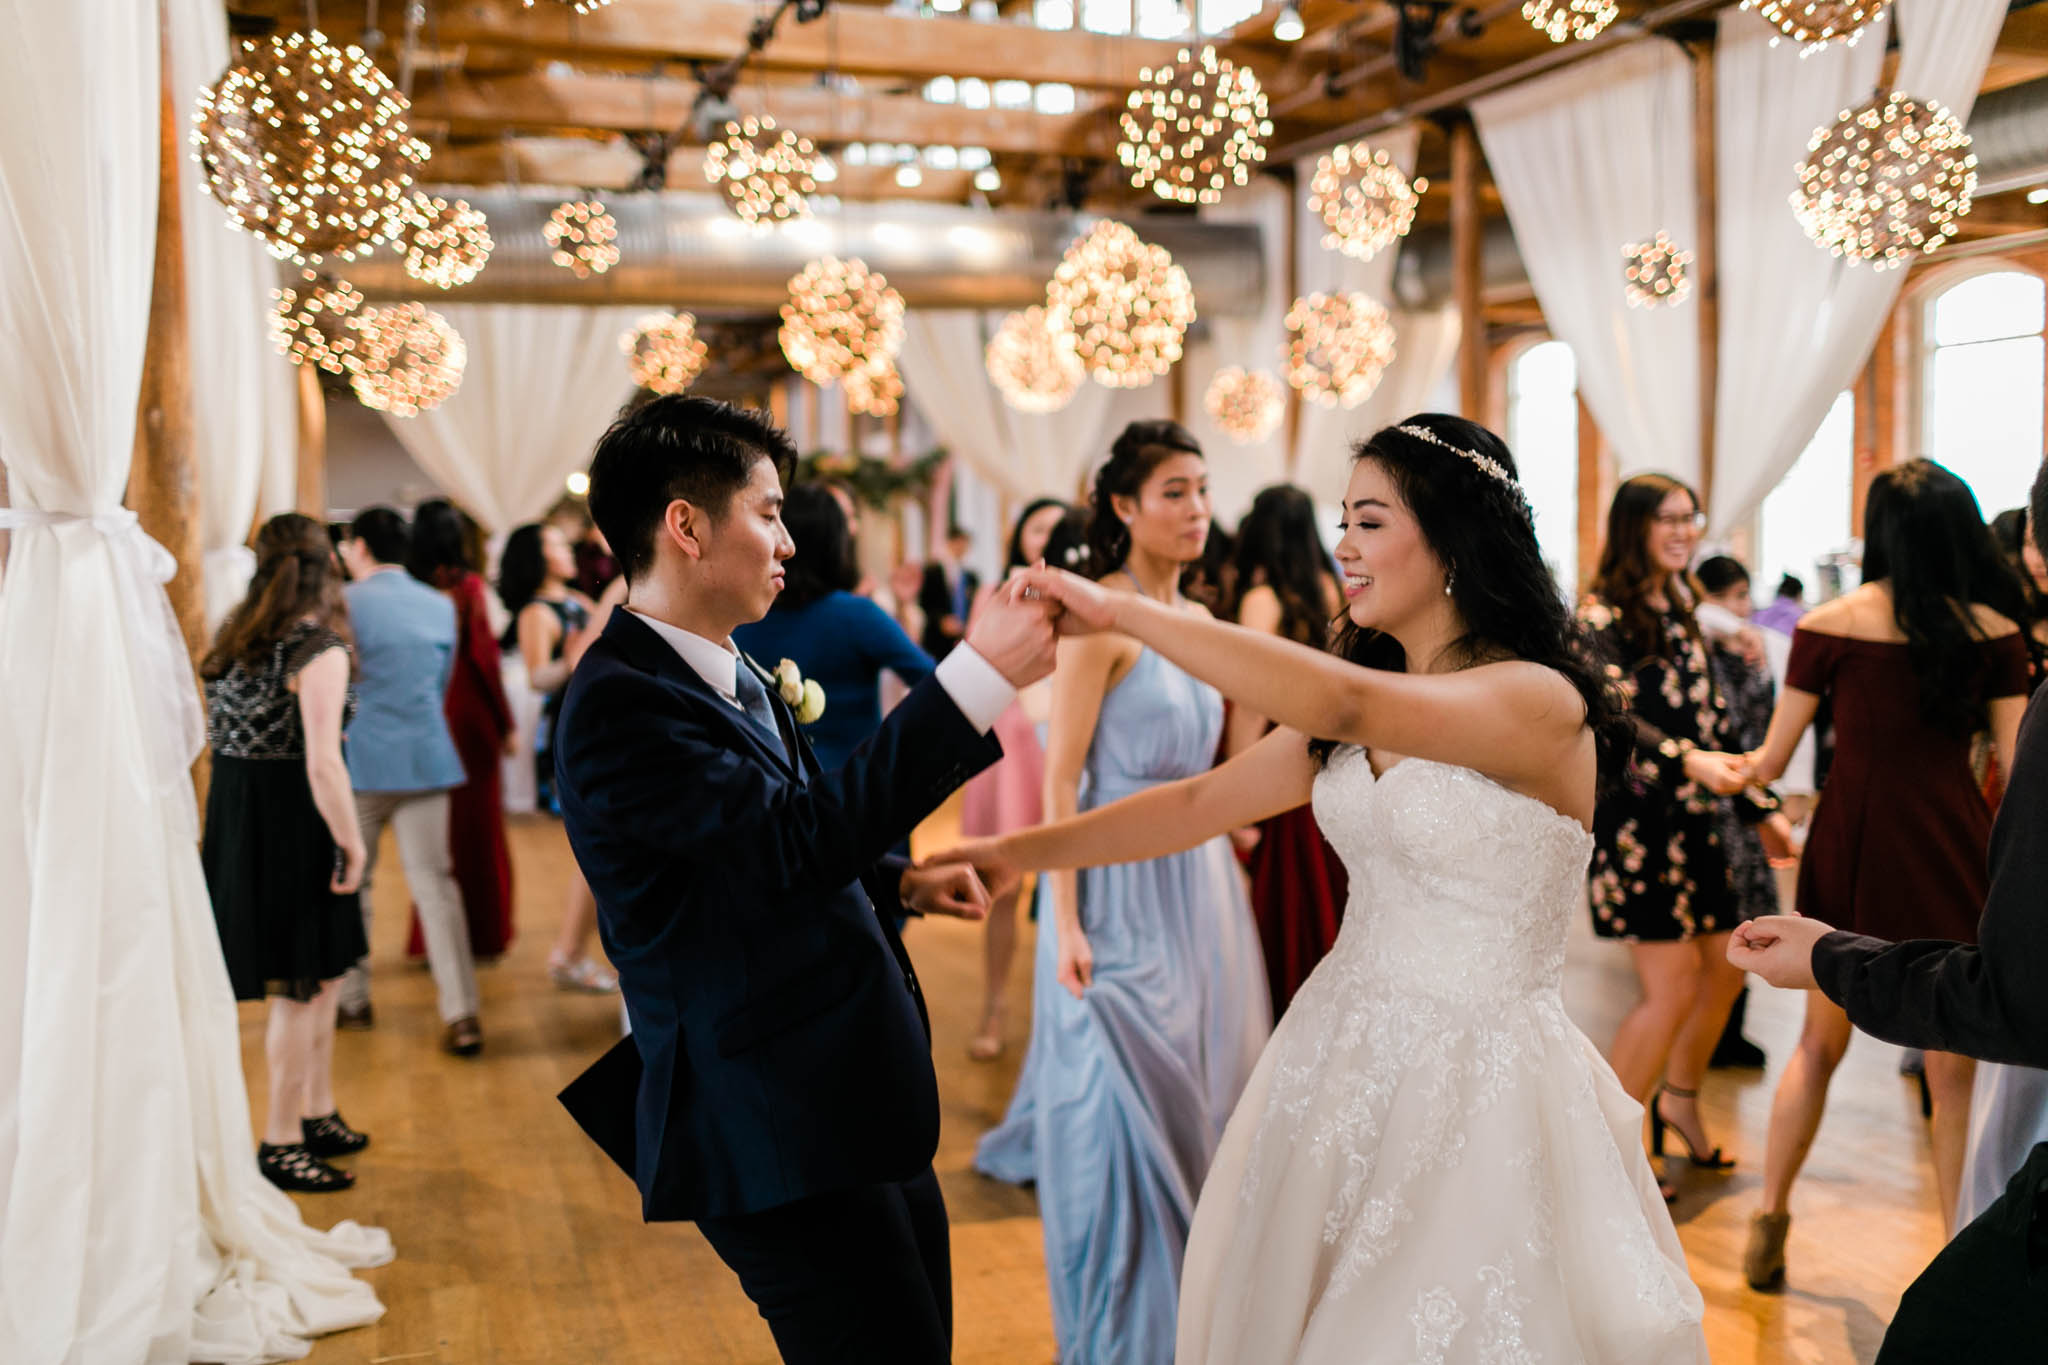 Bride and groom dancing during reception | The Cotton Room | Durham Wedding Photographer | By G. Lin Photography